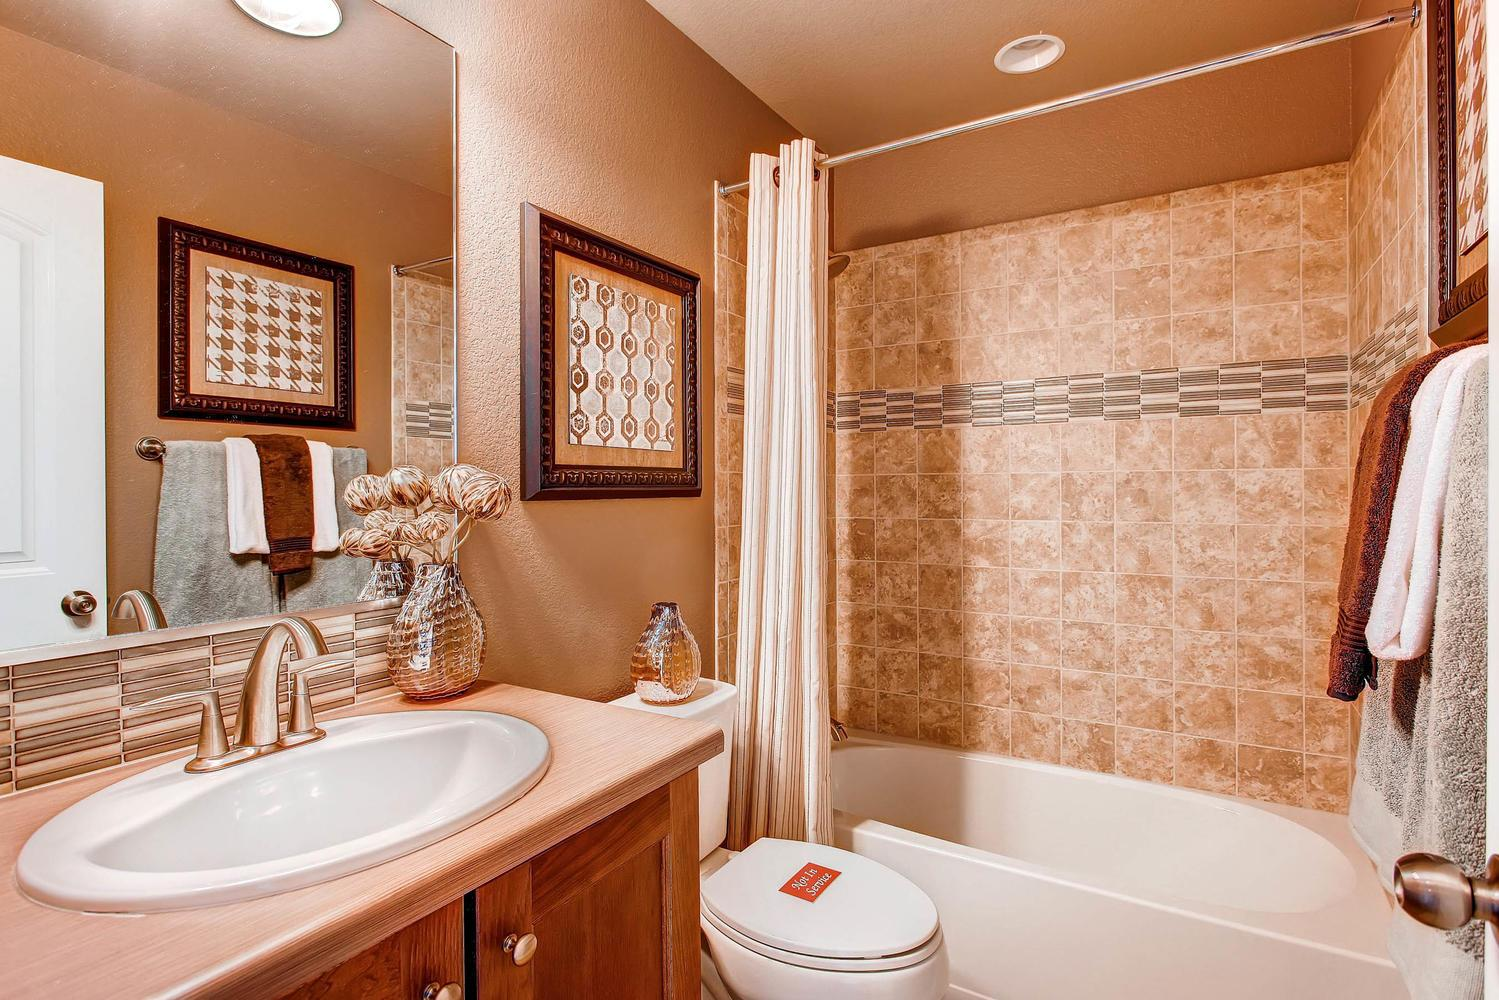 Bathroom featured in the Savannah By Classic Homes in Colorado Springs, CO